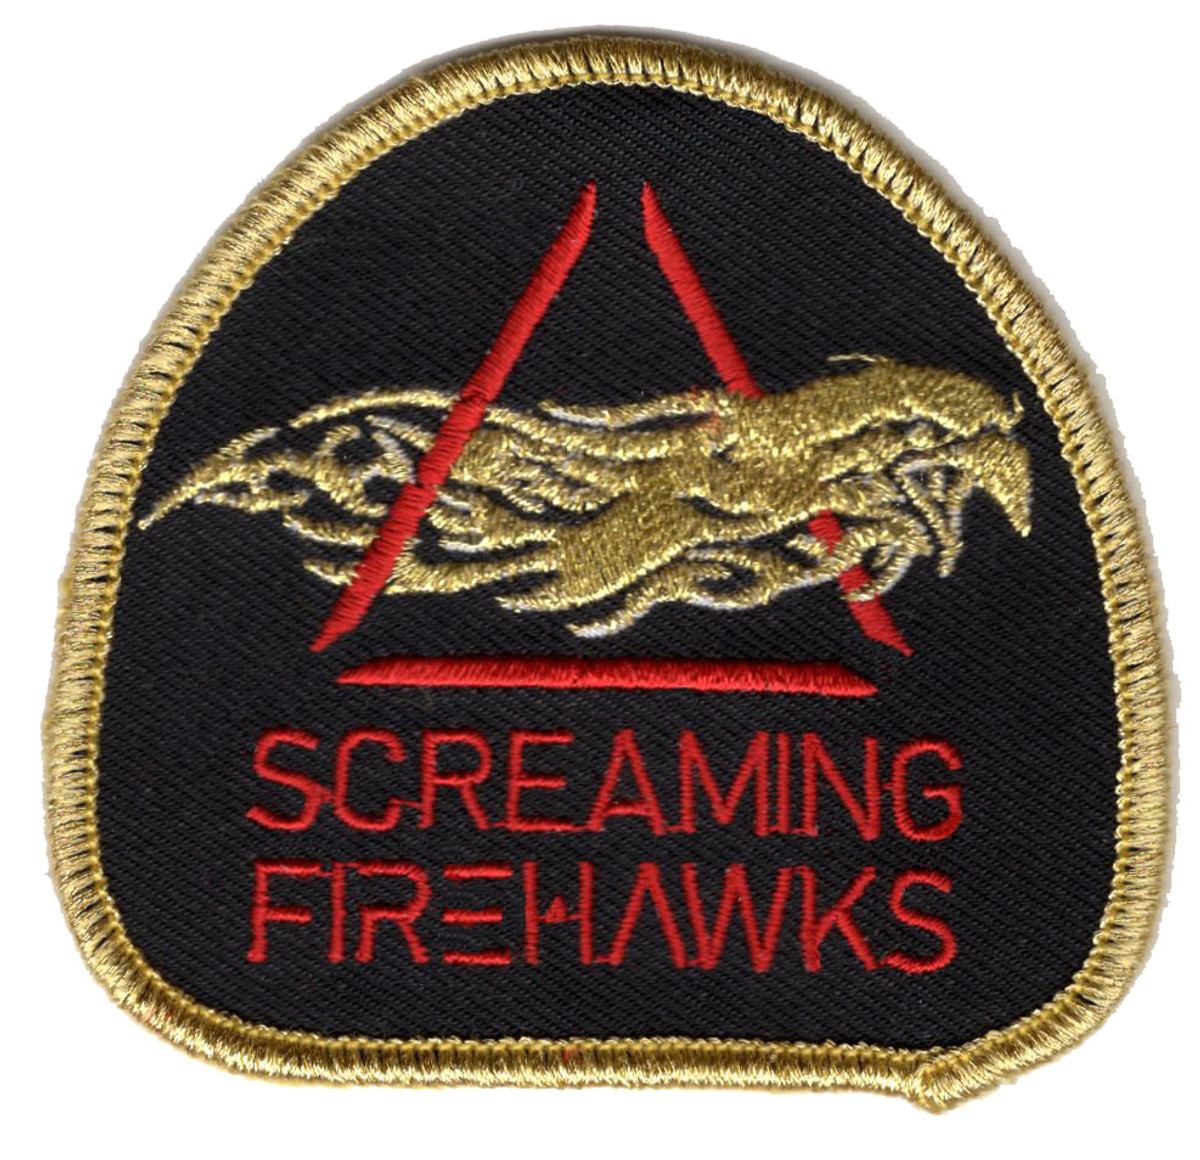 Screaming Firehawks Patch